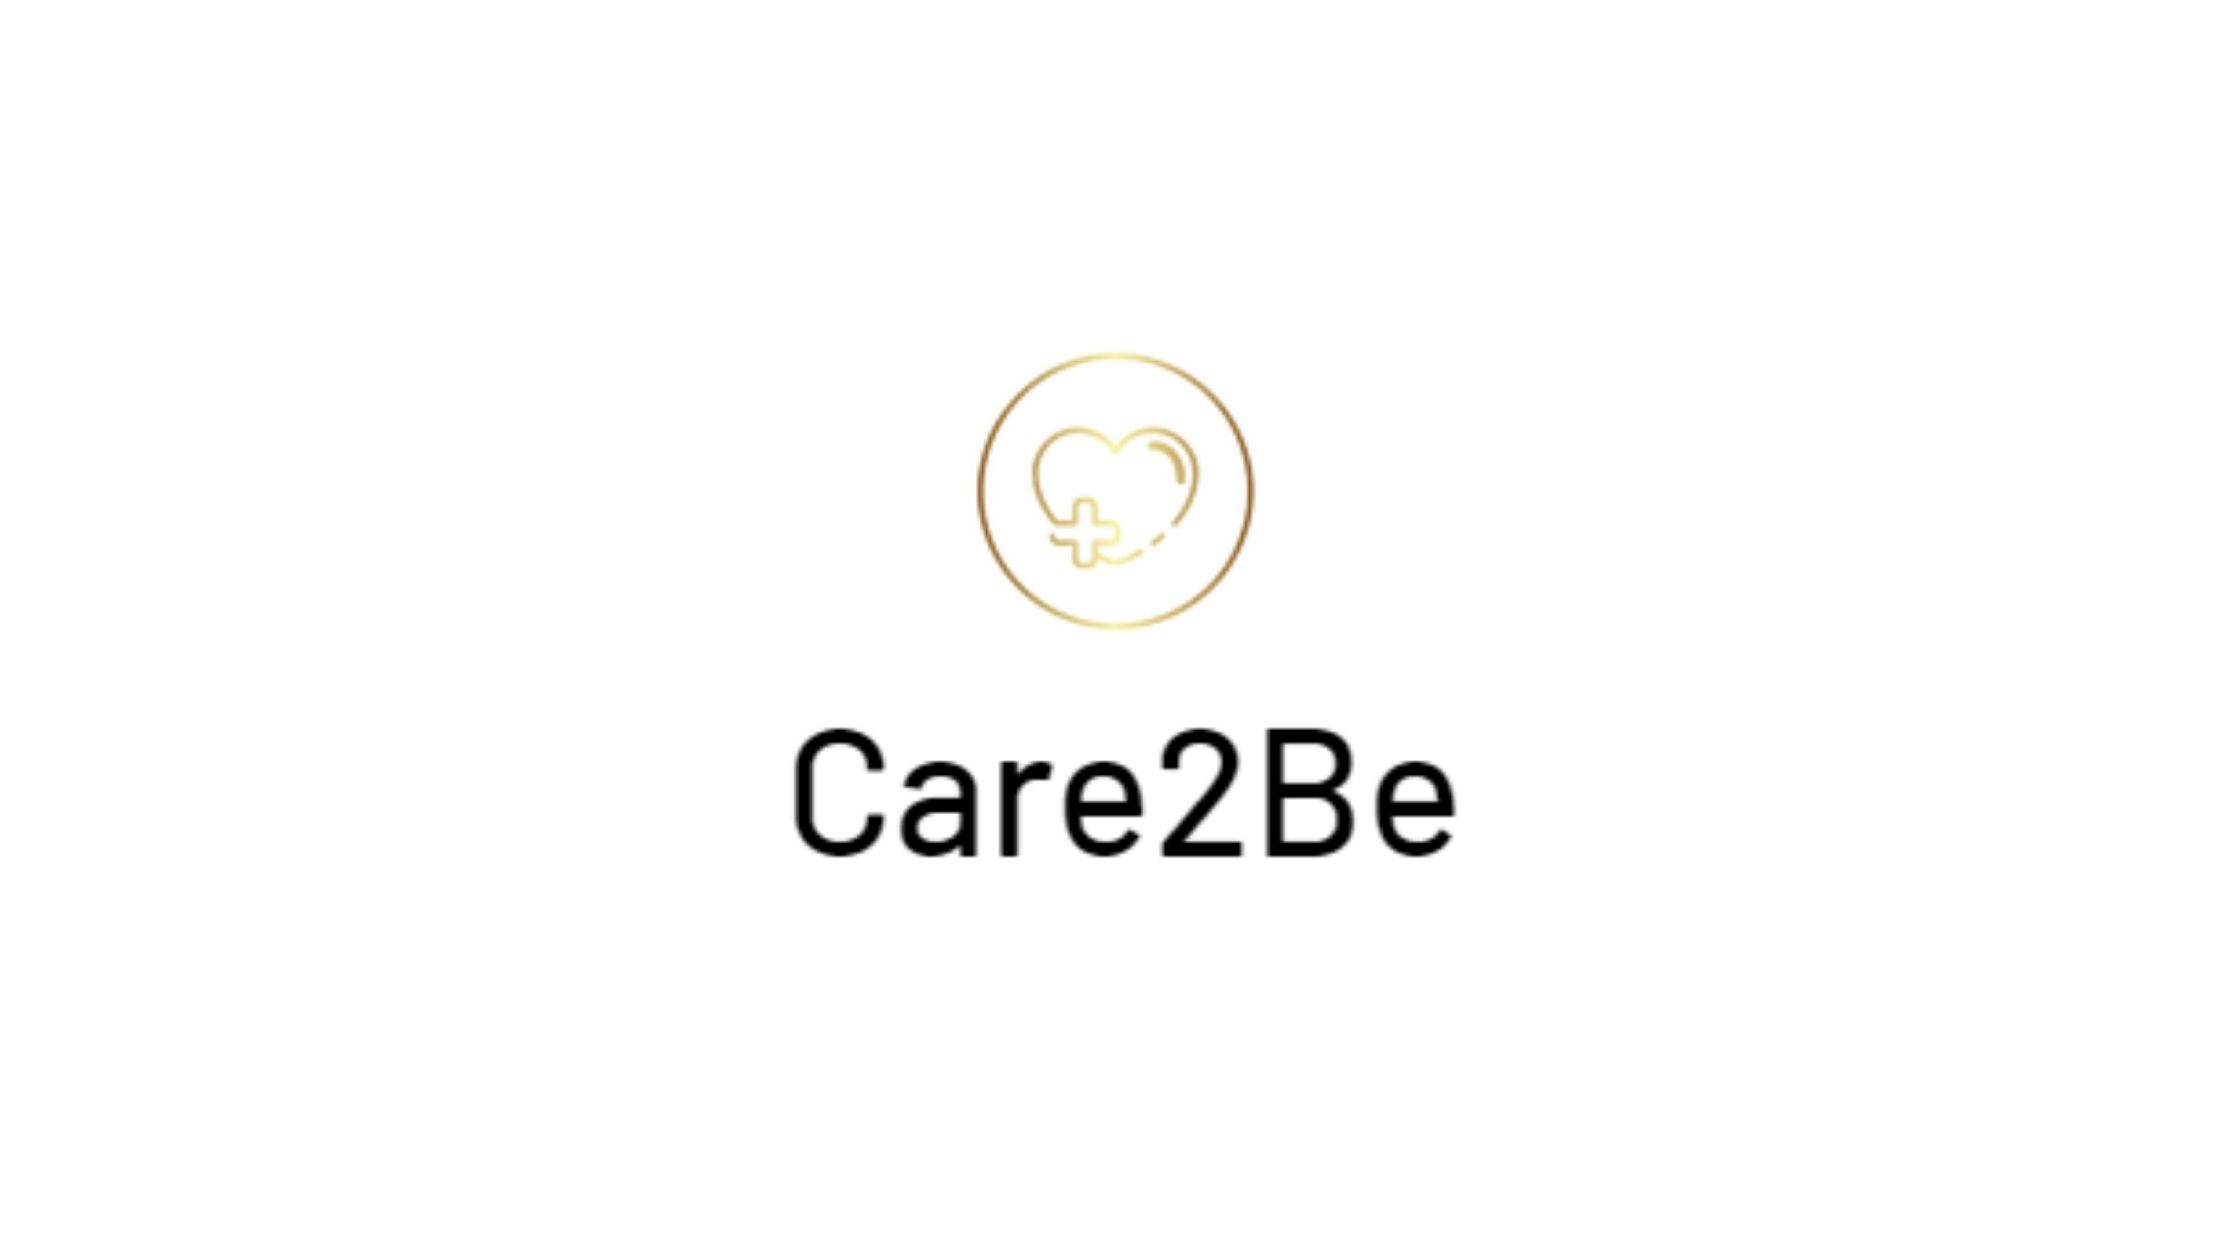 Care2Be